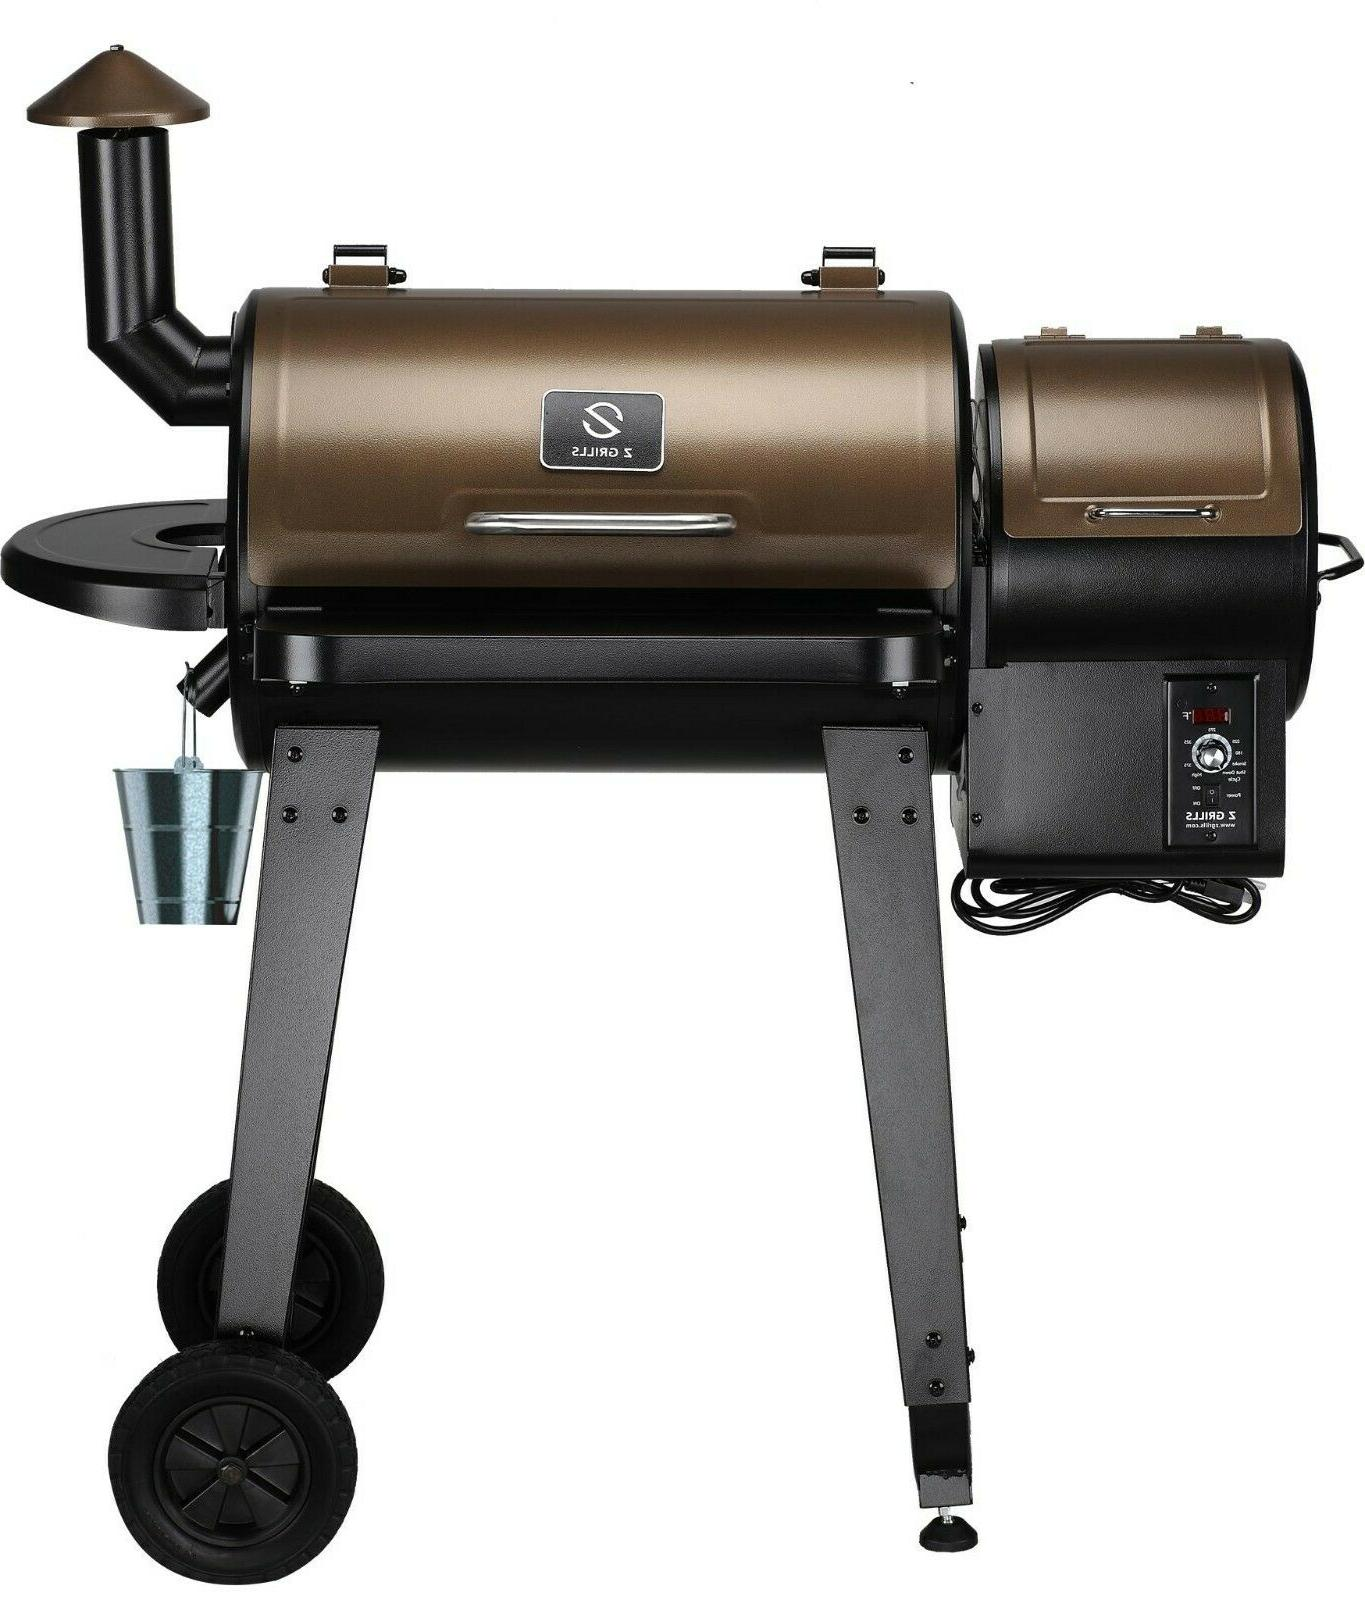 Z Barbecue And Smoker with Digital Temperature